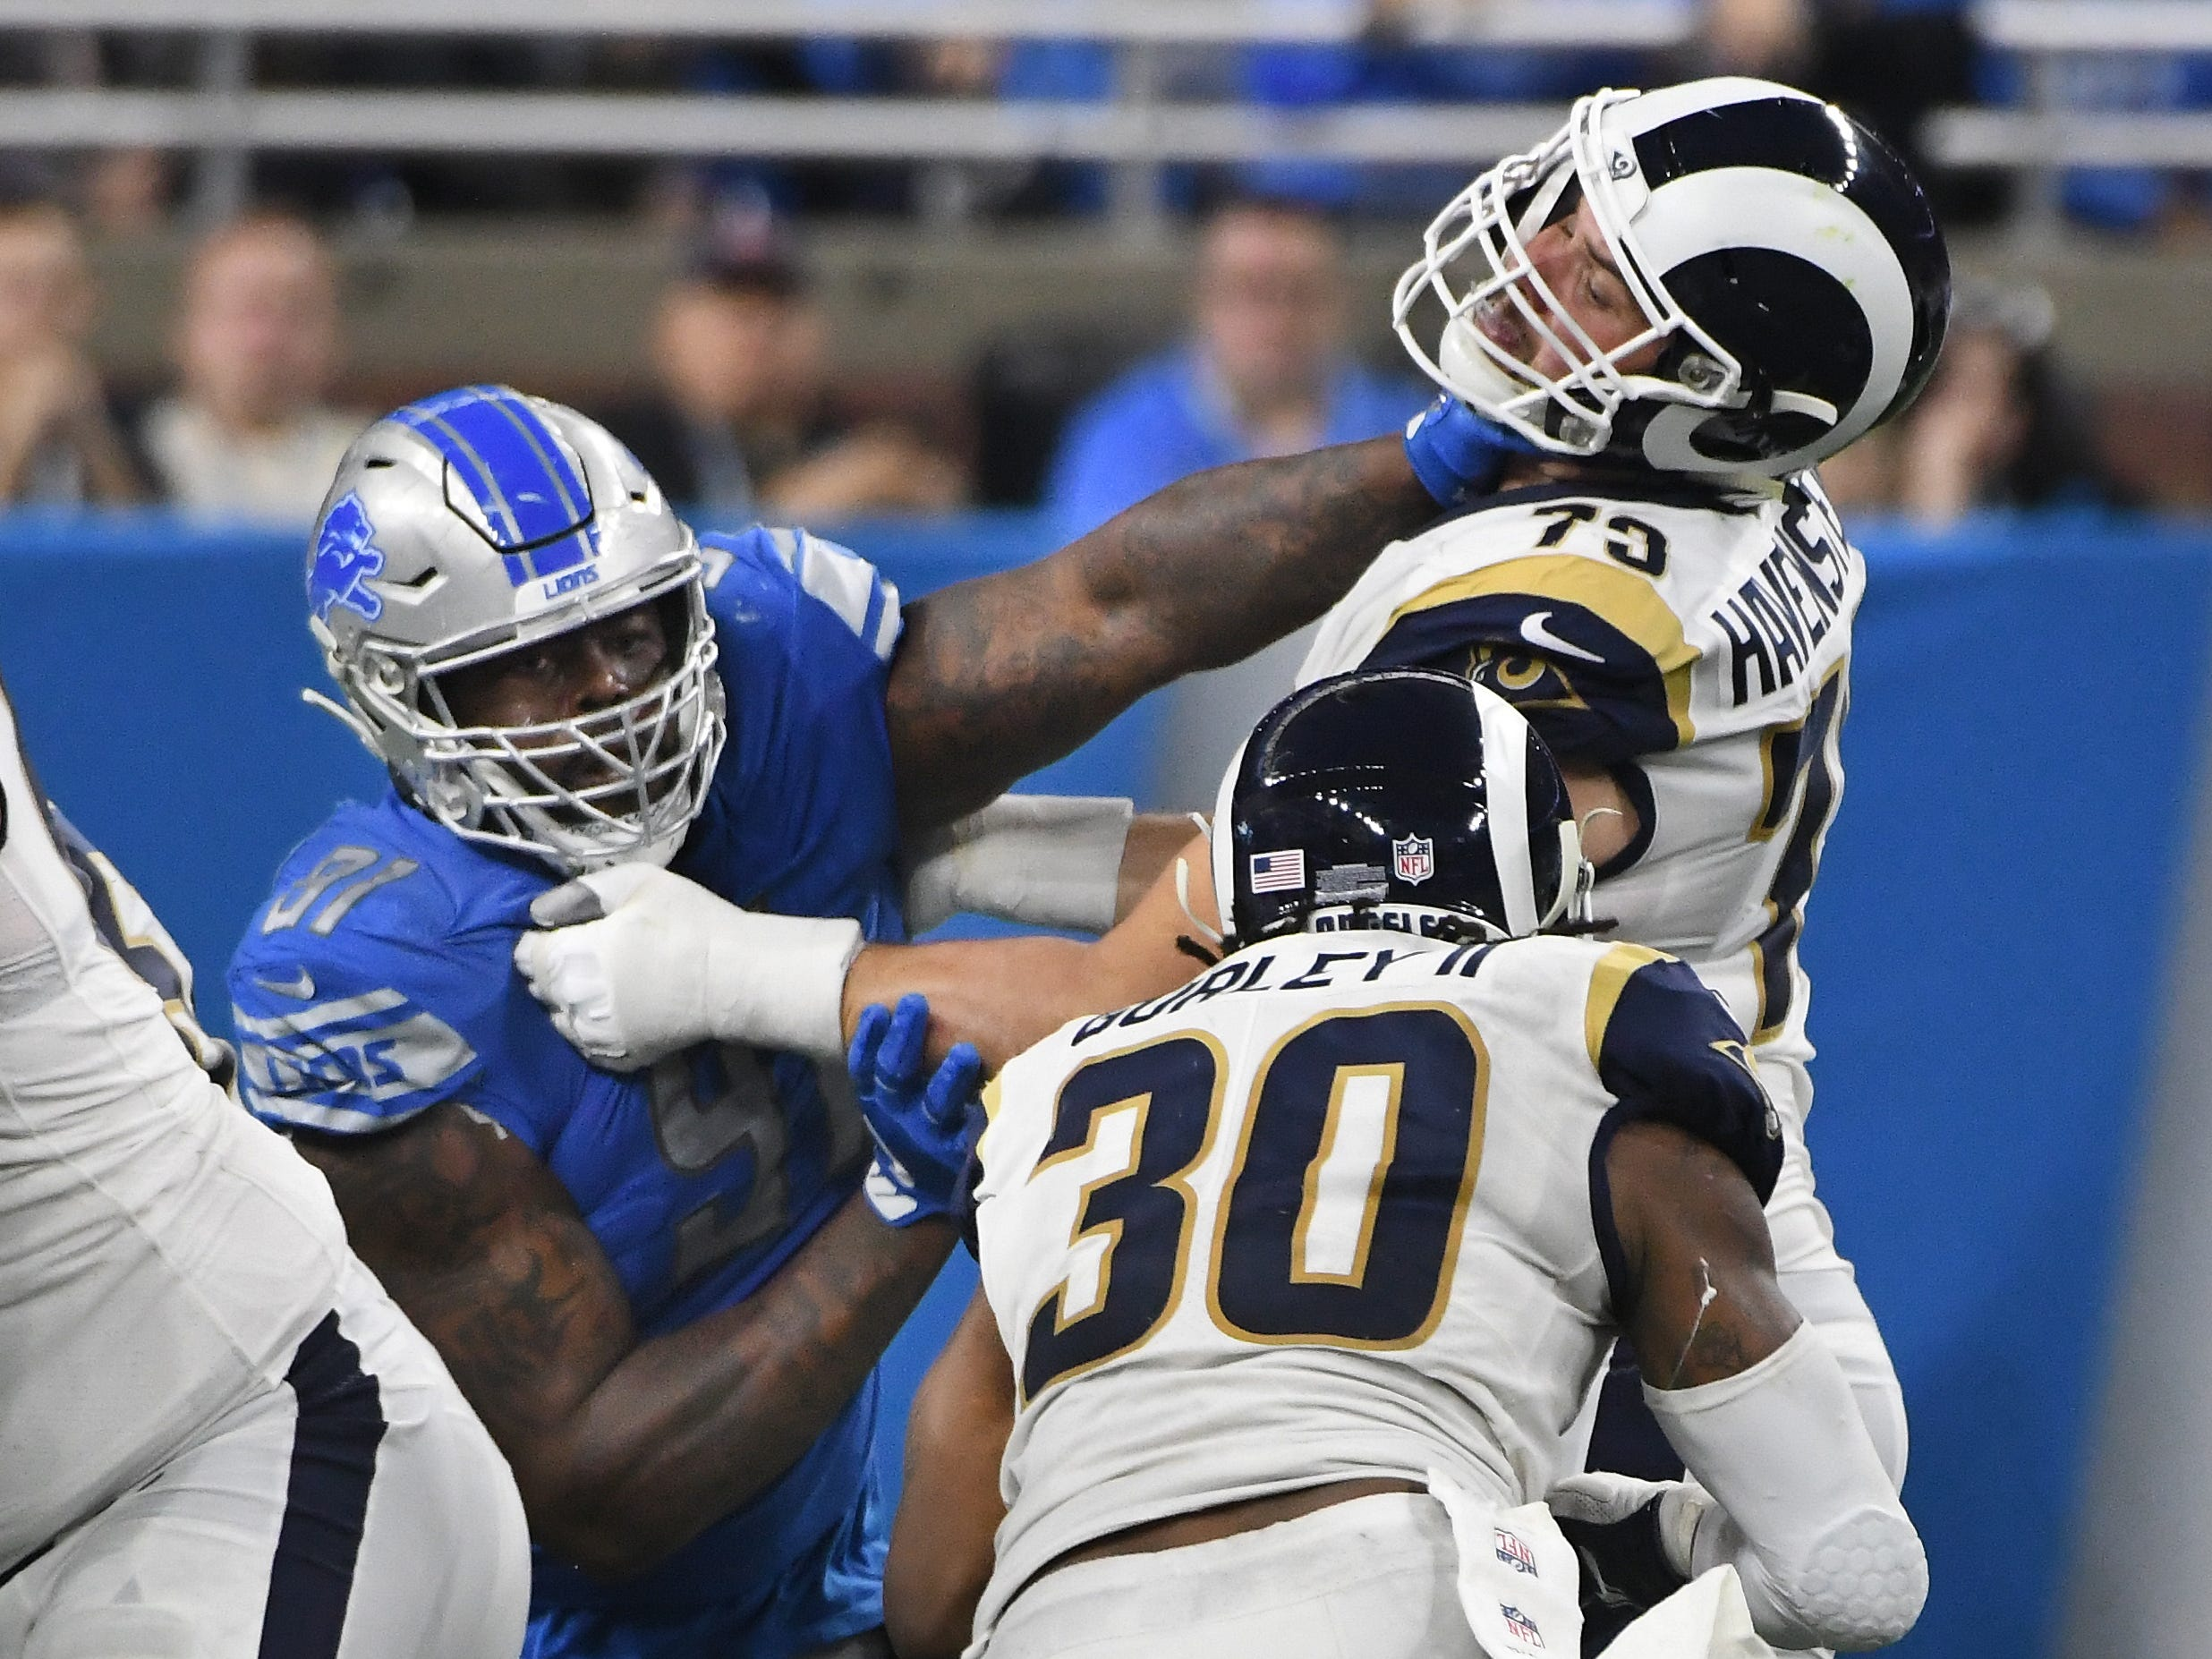 Lions A'Shawn Robinson works on Rams' Rob Havenstein in the third quarter.